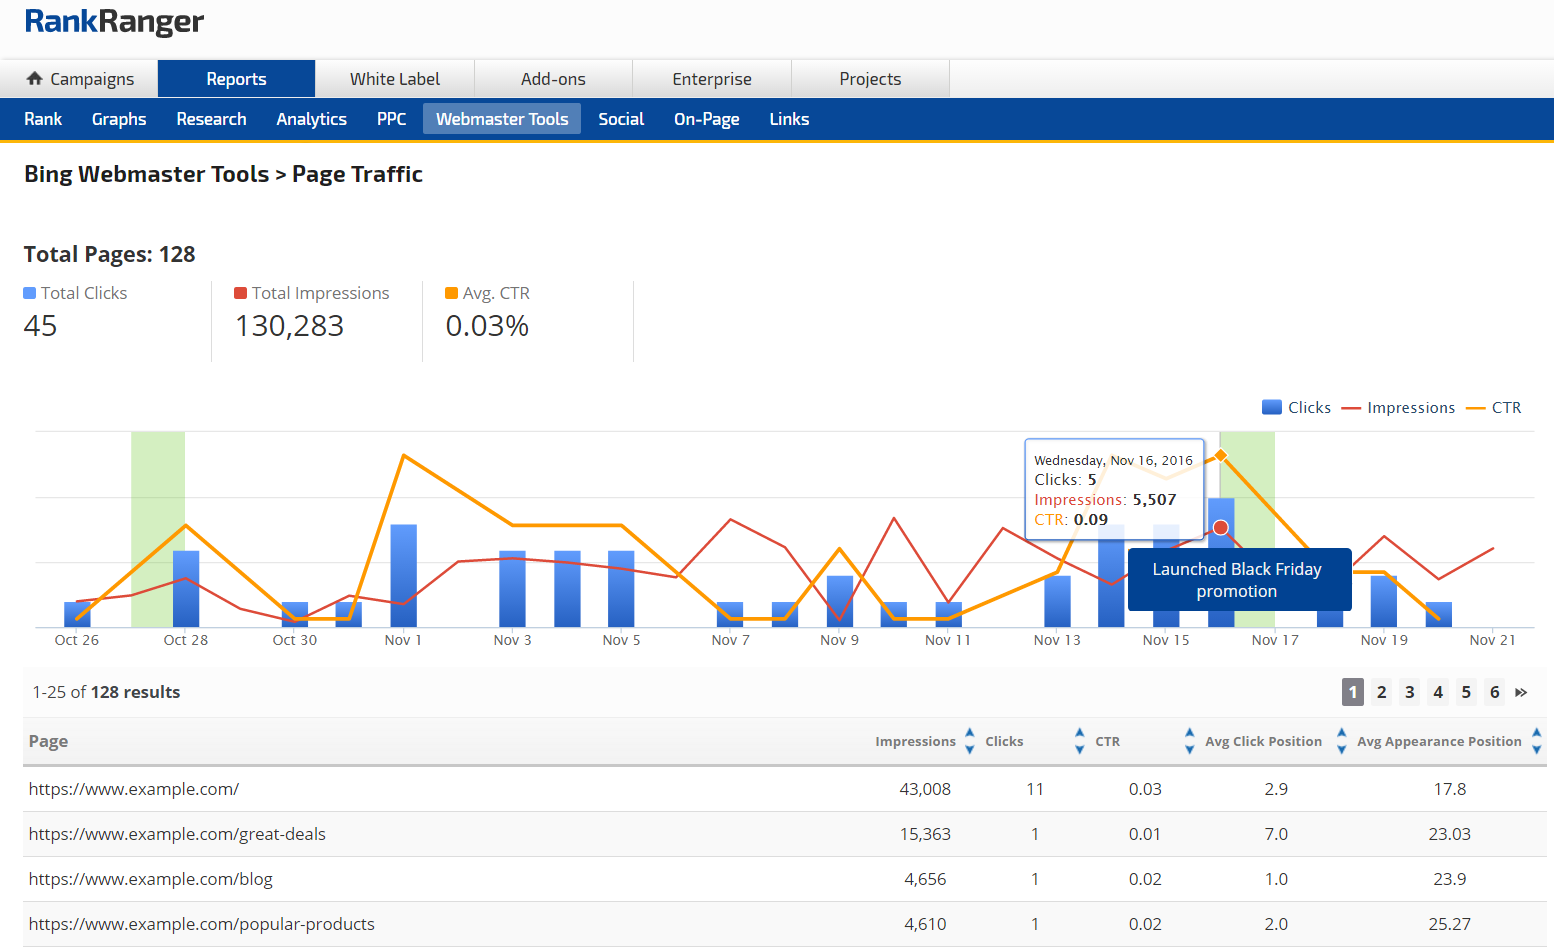 Bing Webmaster Tools Rank Ranger Report